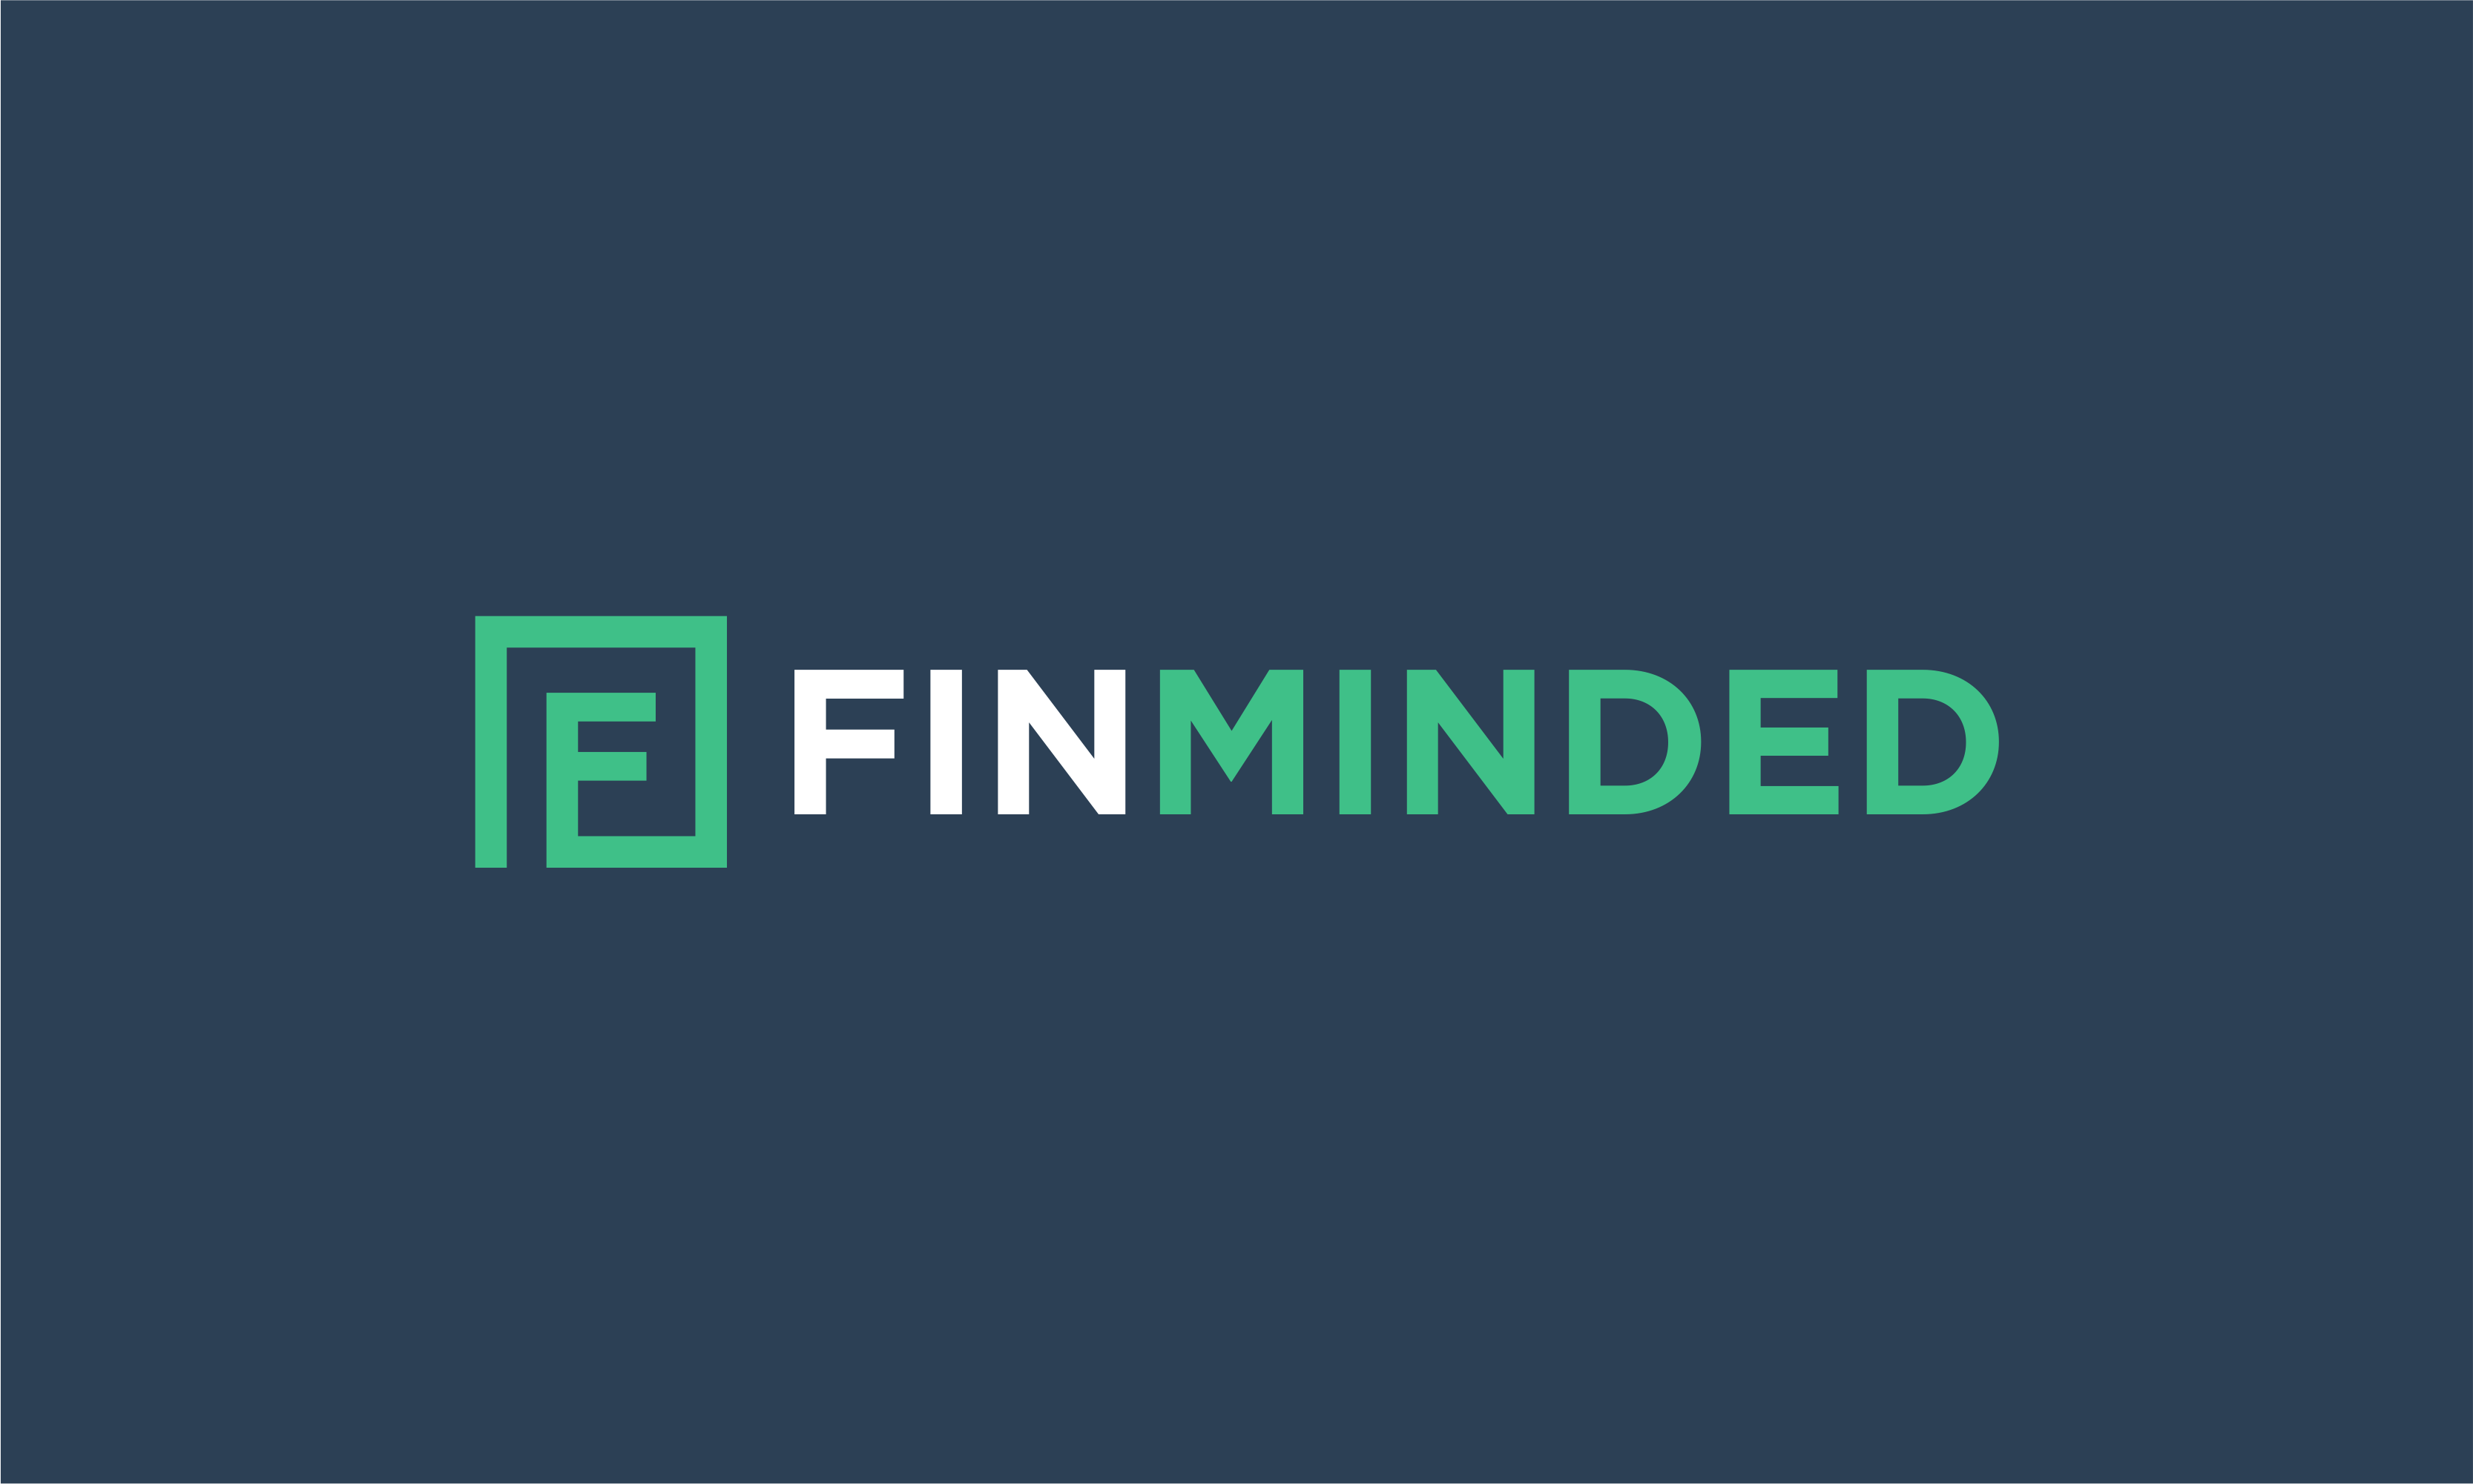 Finminded